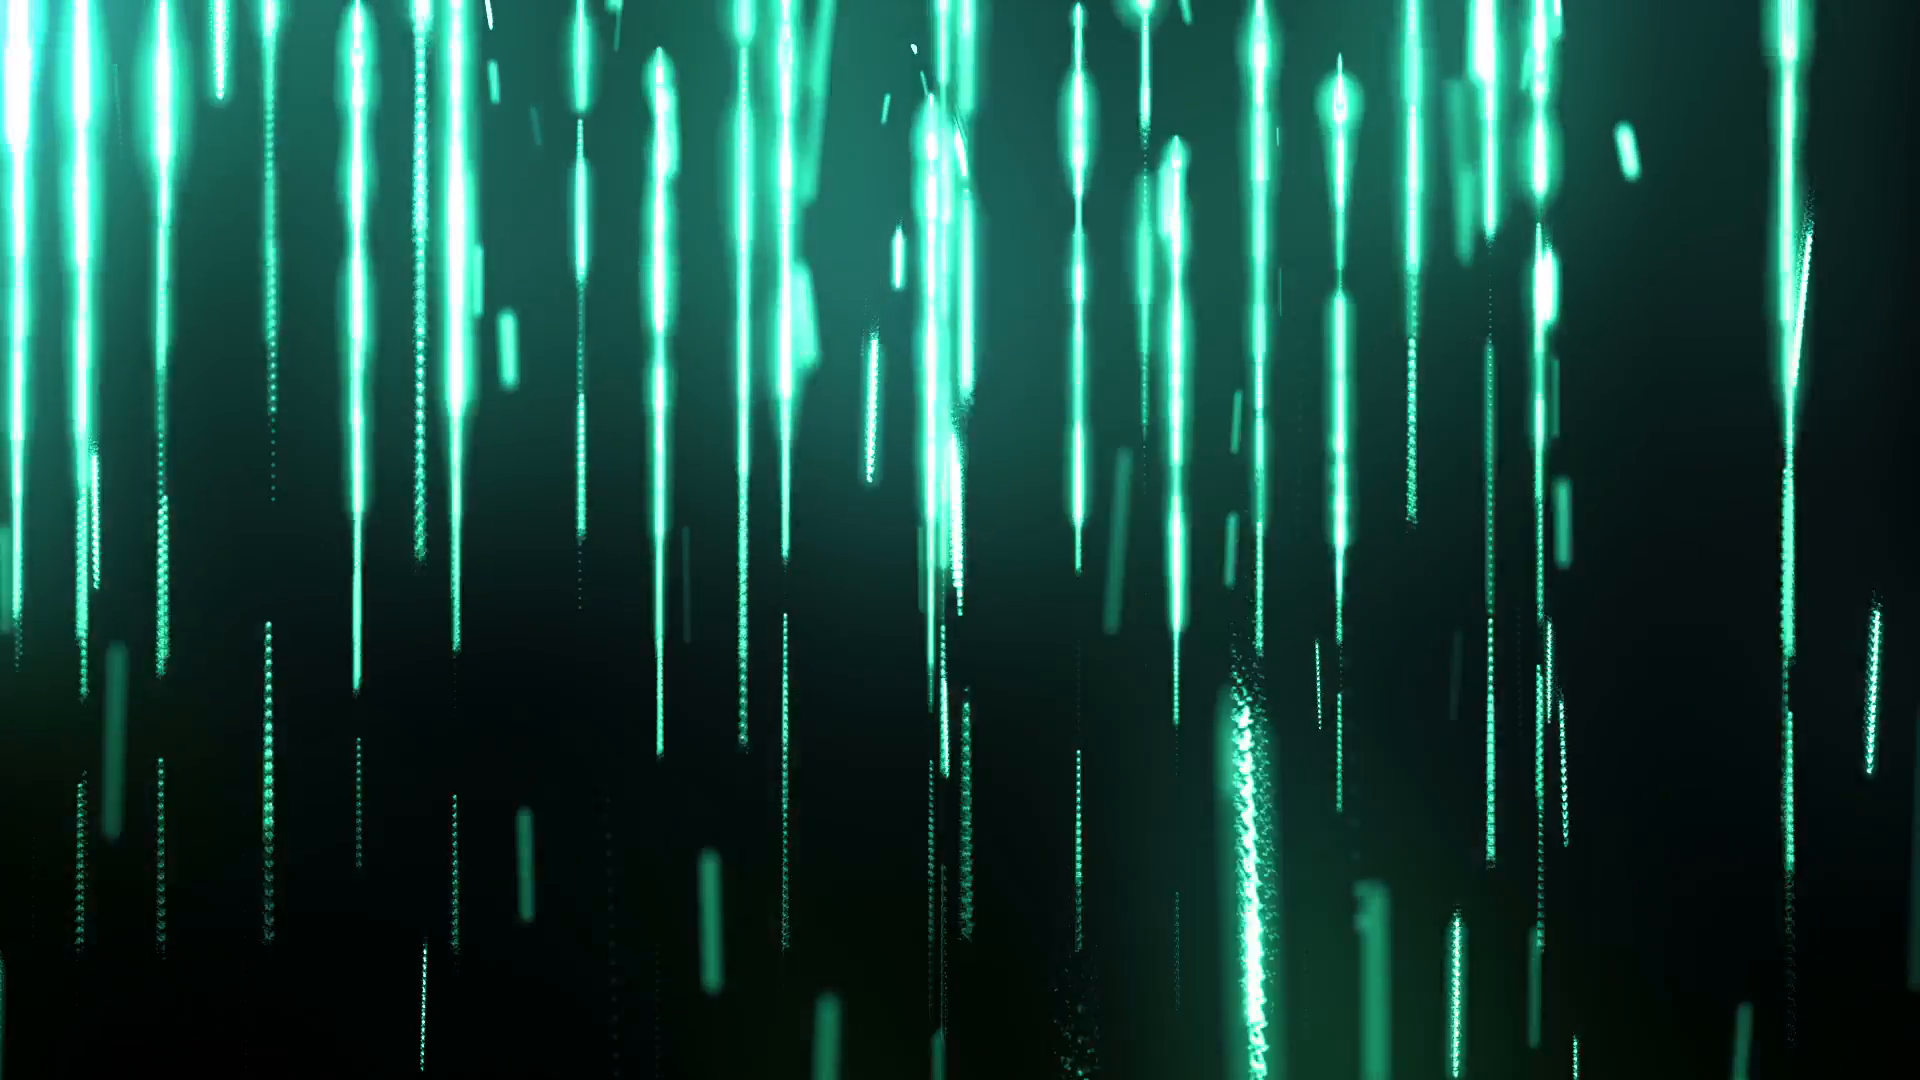 Data Packets 46 Loopable Background Motion Background 1920x1080